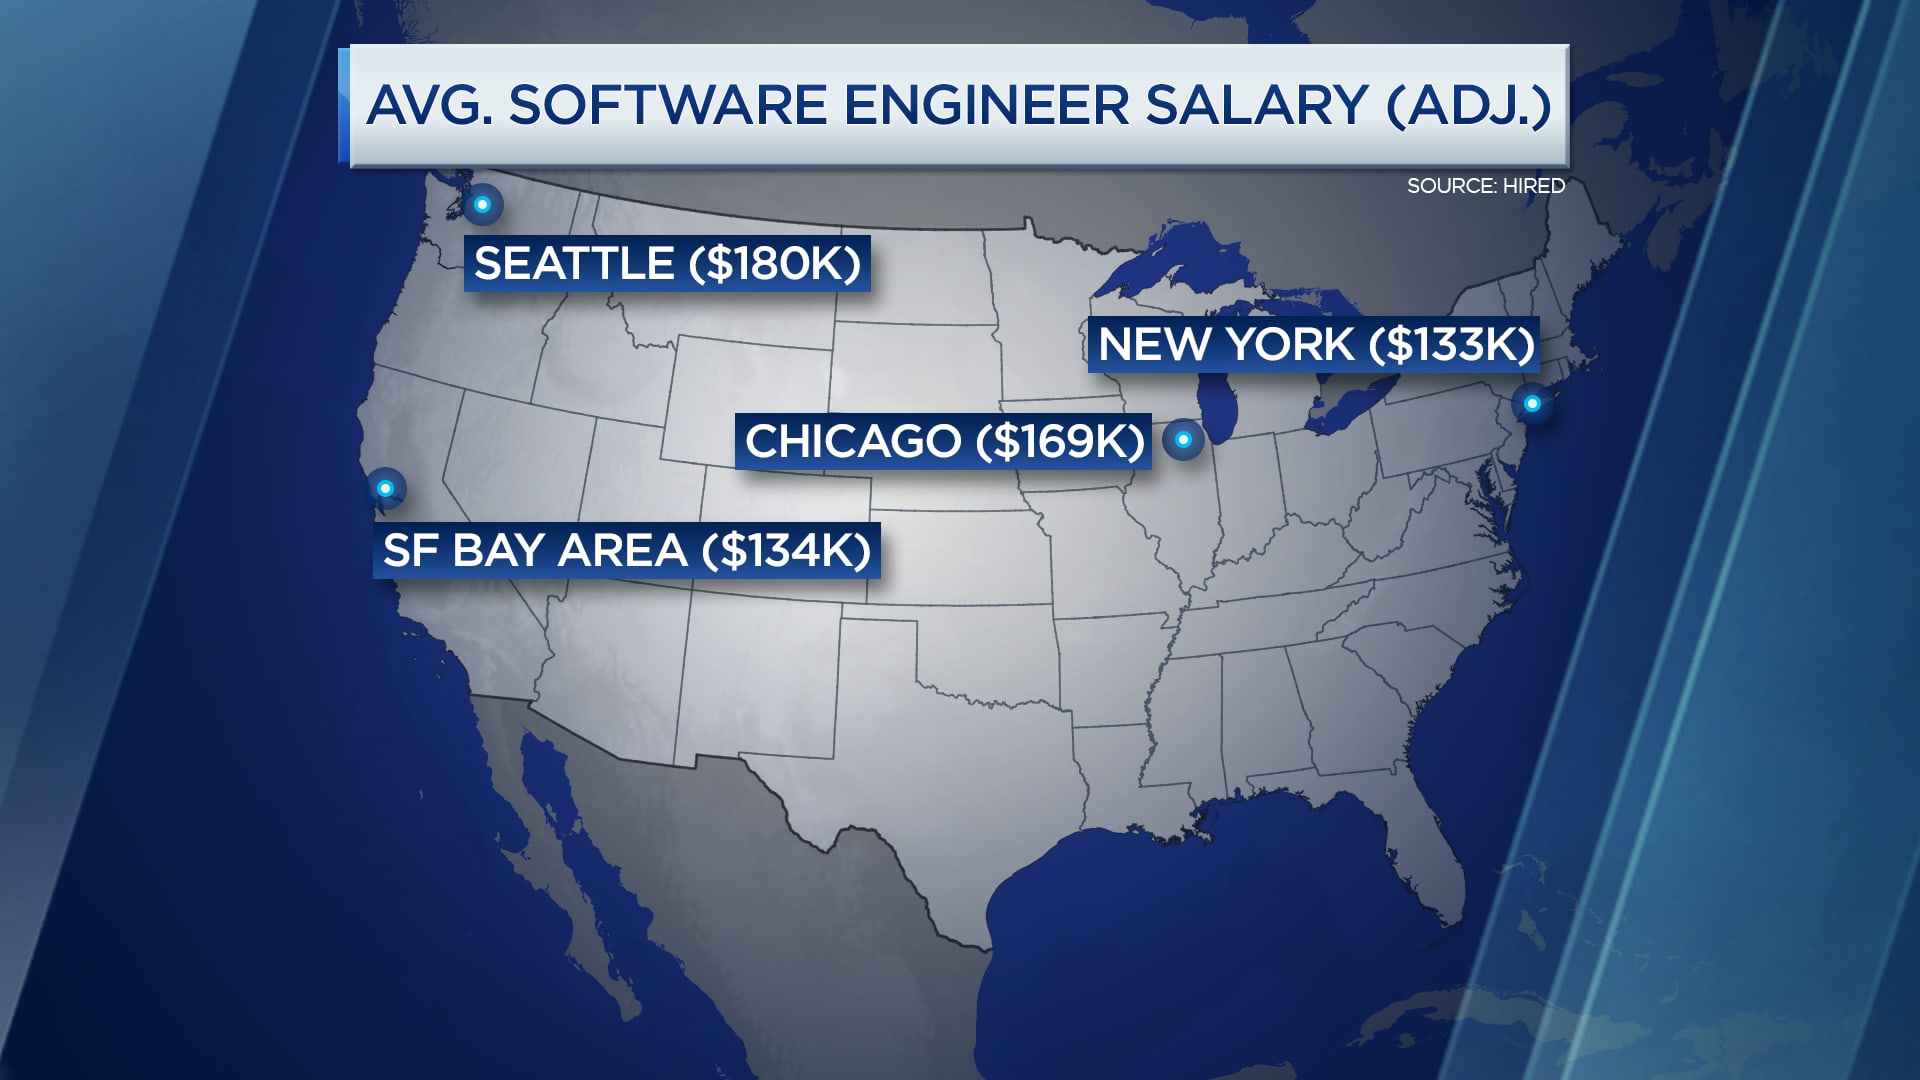 CNBC: Software engineer salaries